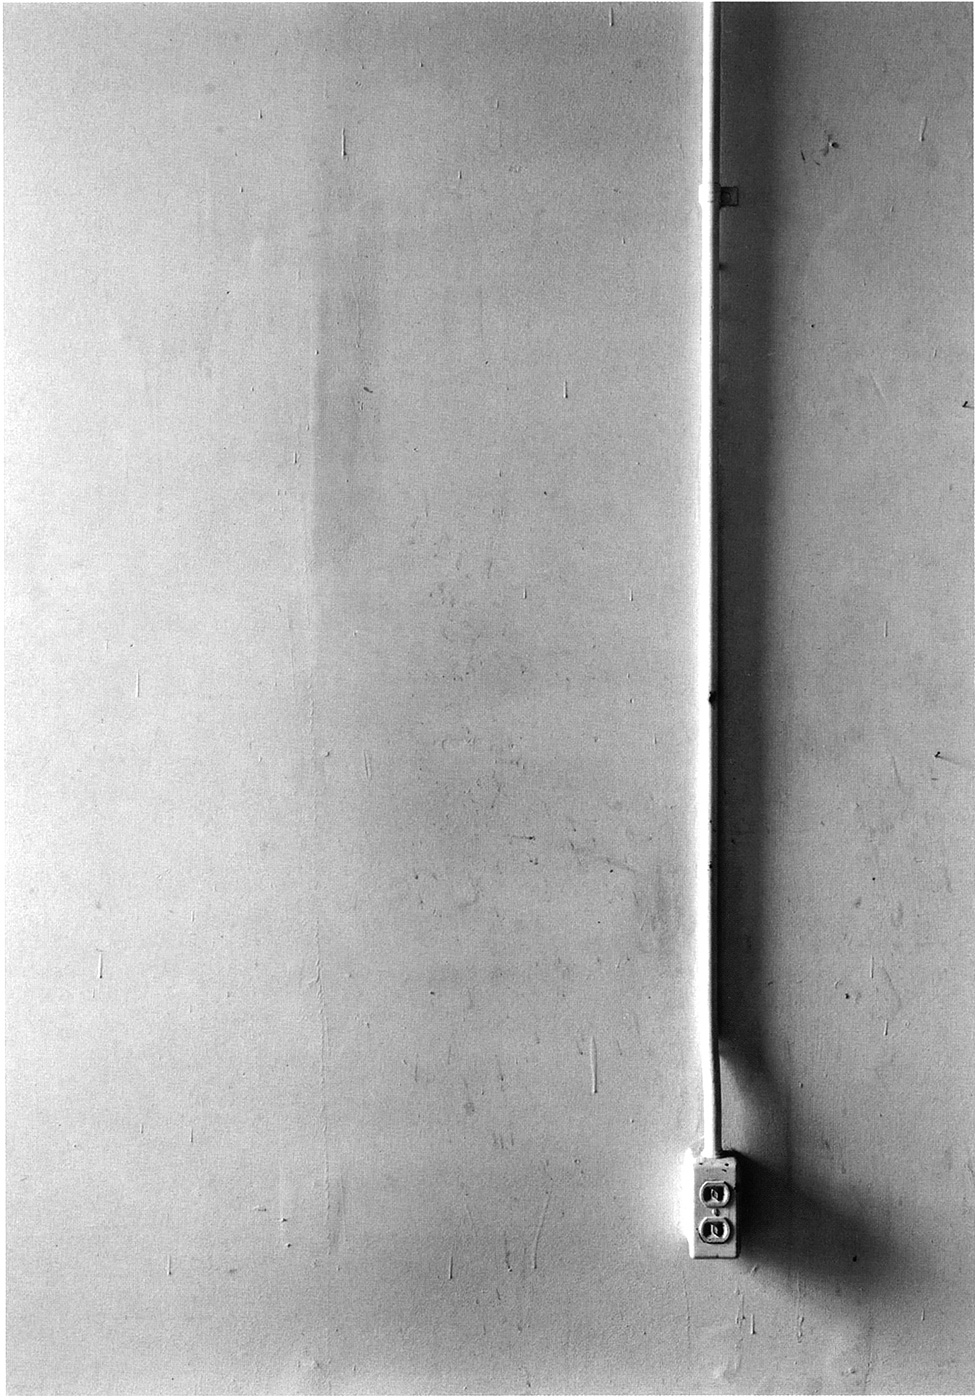 Untitled (Plug Like Flavin), 1970-1979